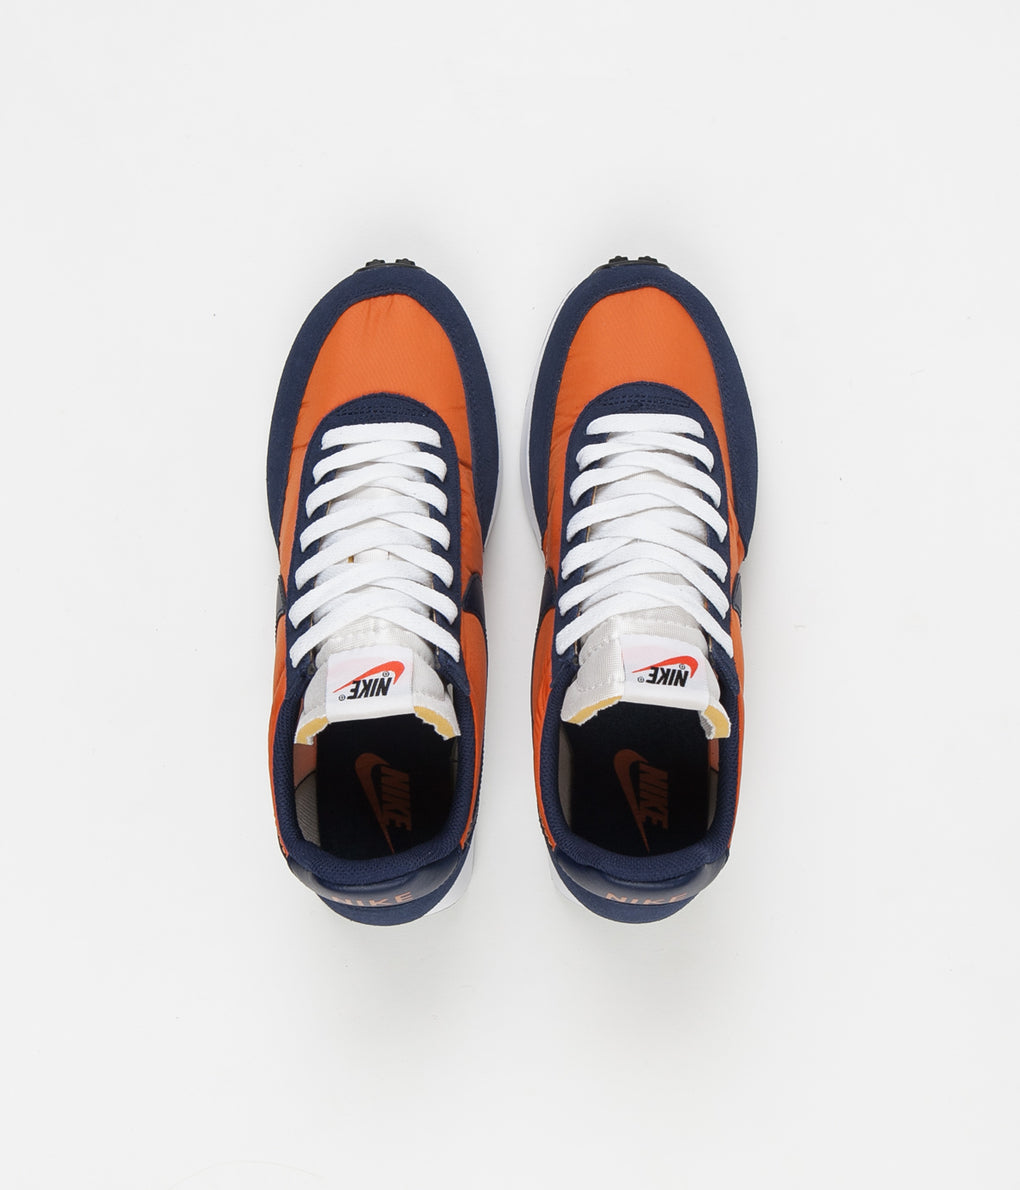 Nike Air Tailwind 79 Shoes - Starfish / Midnight Navy - White - Black